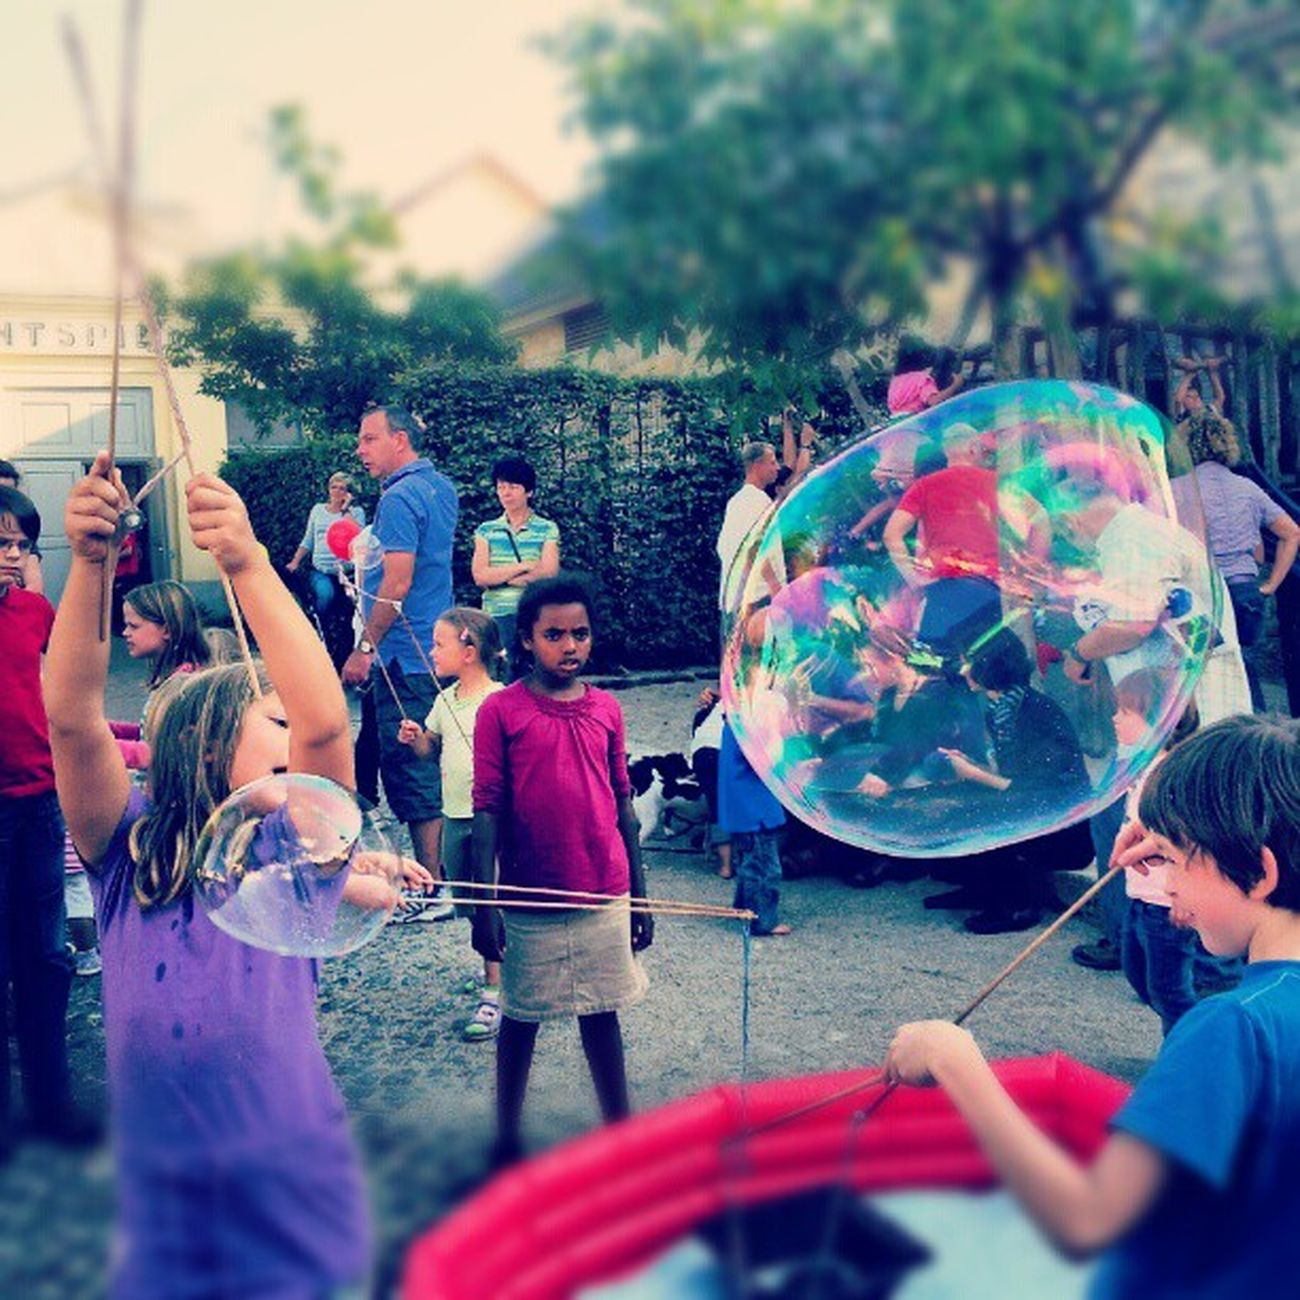 soap bubbles #soap #bubble #soap-bubble #fly #children #kids #fun #summer #color #colorful #photooftheday #bestshot #ink361 #ig #jj #igers #instagood #instagram #instamood #magic #photographie #photography #picoftheday #popular #capturedmoment #blaueswund Children Igers Photography Photographie  Bubble Jj  Fly Instagood Colorful Ink361 DD Blaueswunder Popular Photooftheday Instagram Kids Picoftheday Summer Soap Fun Capturedmoment Magic Instamood Dresden Ig Color Bestshot